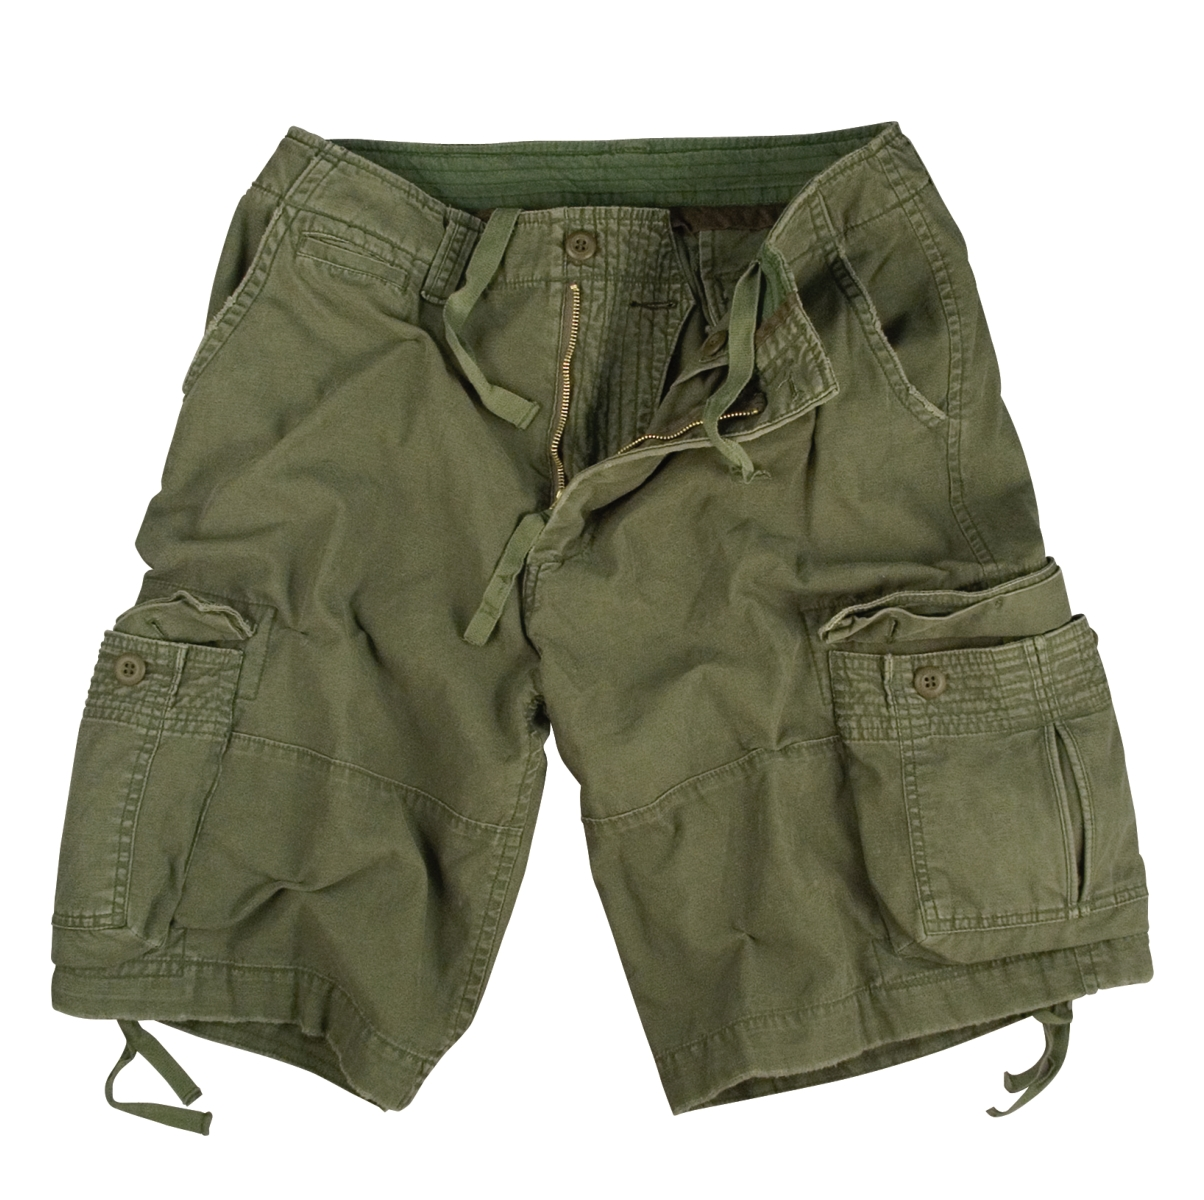 Our Men's Shorts Offer Top-Notch Wearability When spring and summer come knocking on the door, make sure you've got the appropriate apparel to say hello! Whether it's a comfy pair of cargo shorts, sharp khaki shorts or preppy plaid, you've got plenty of options to work with!